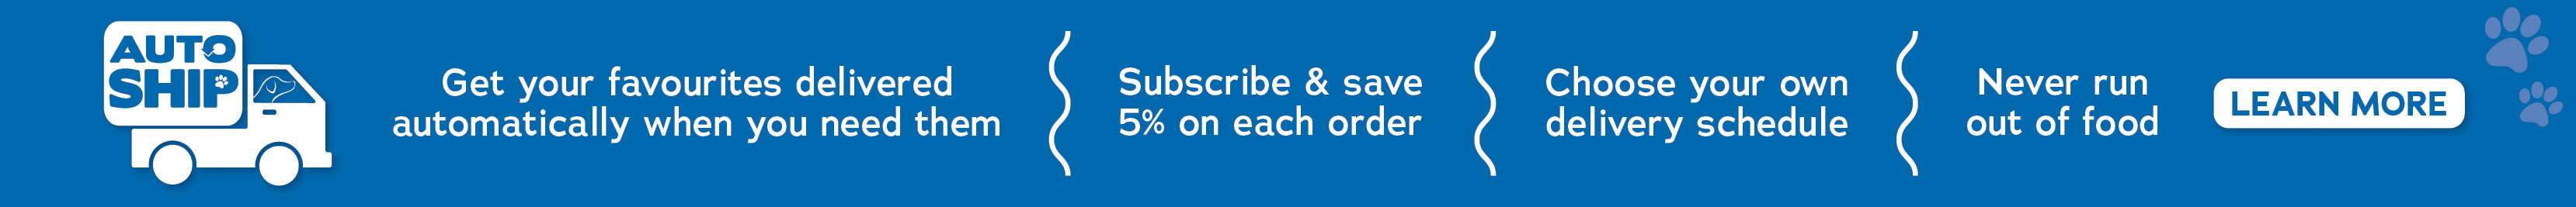 Autoship. Get your favourite's delivered automatically when you need them.